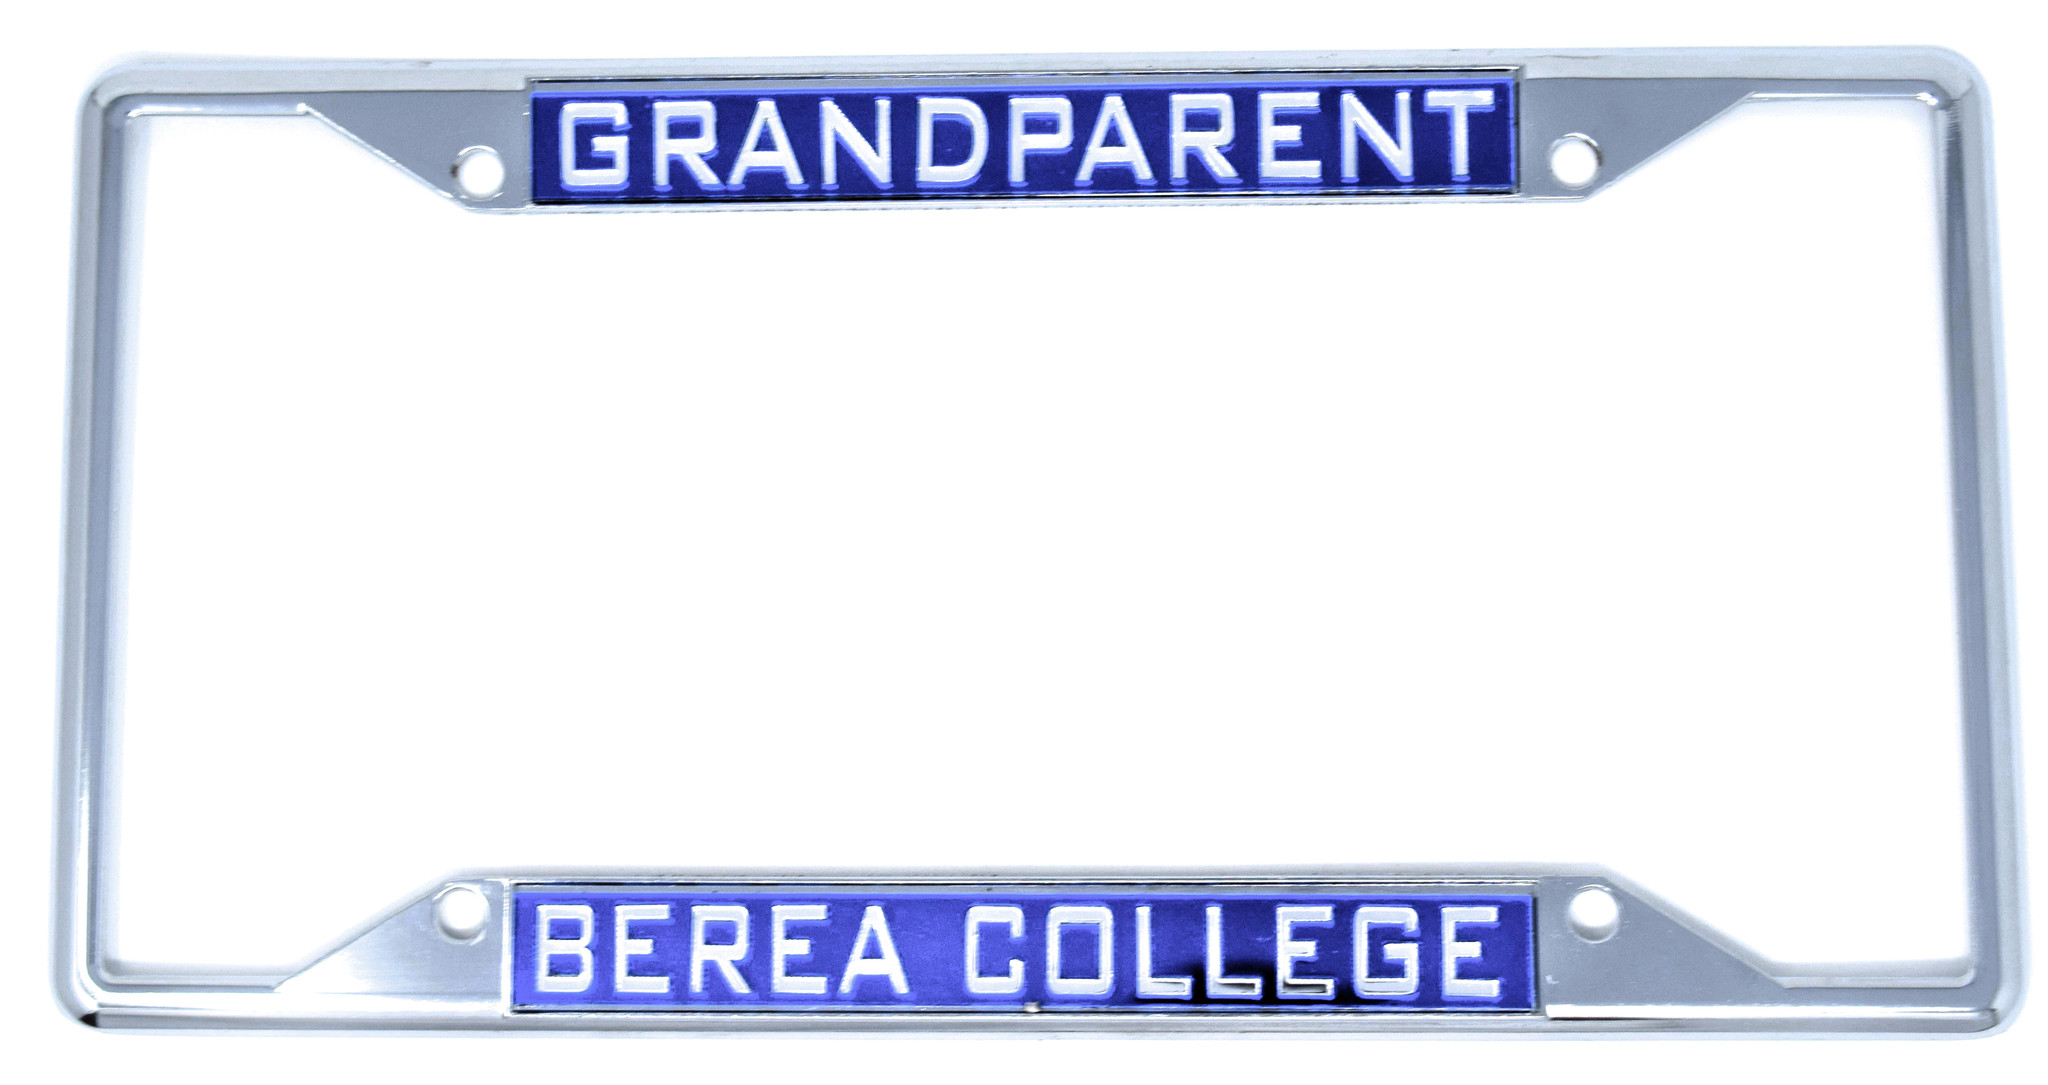 License Plate Frame, Berea College Grandparent-1